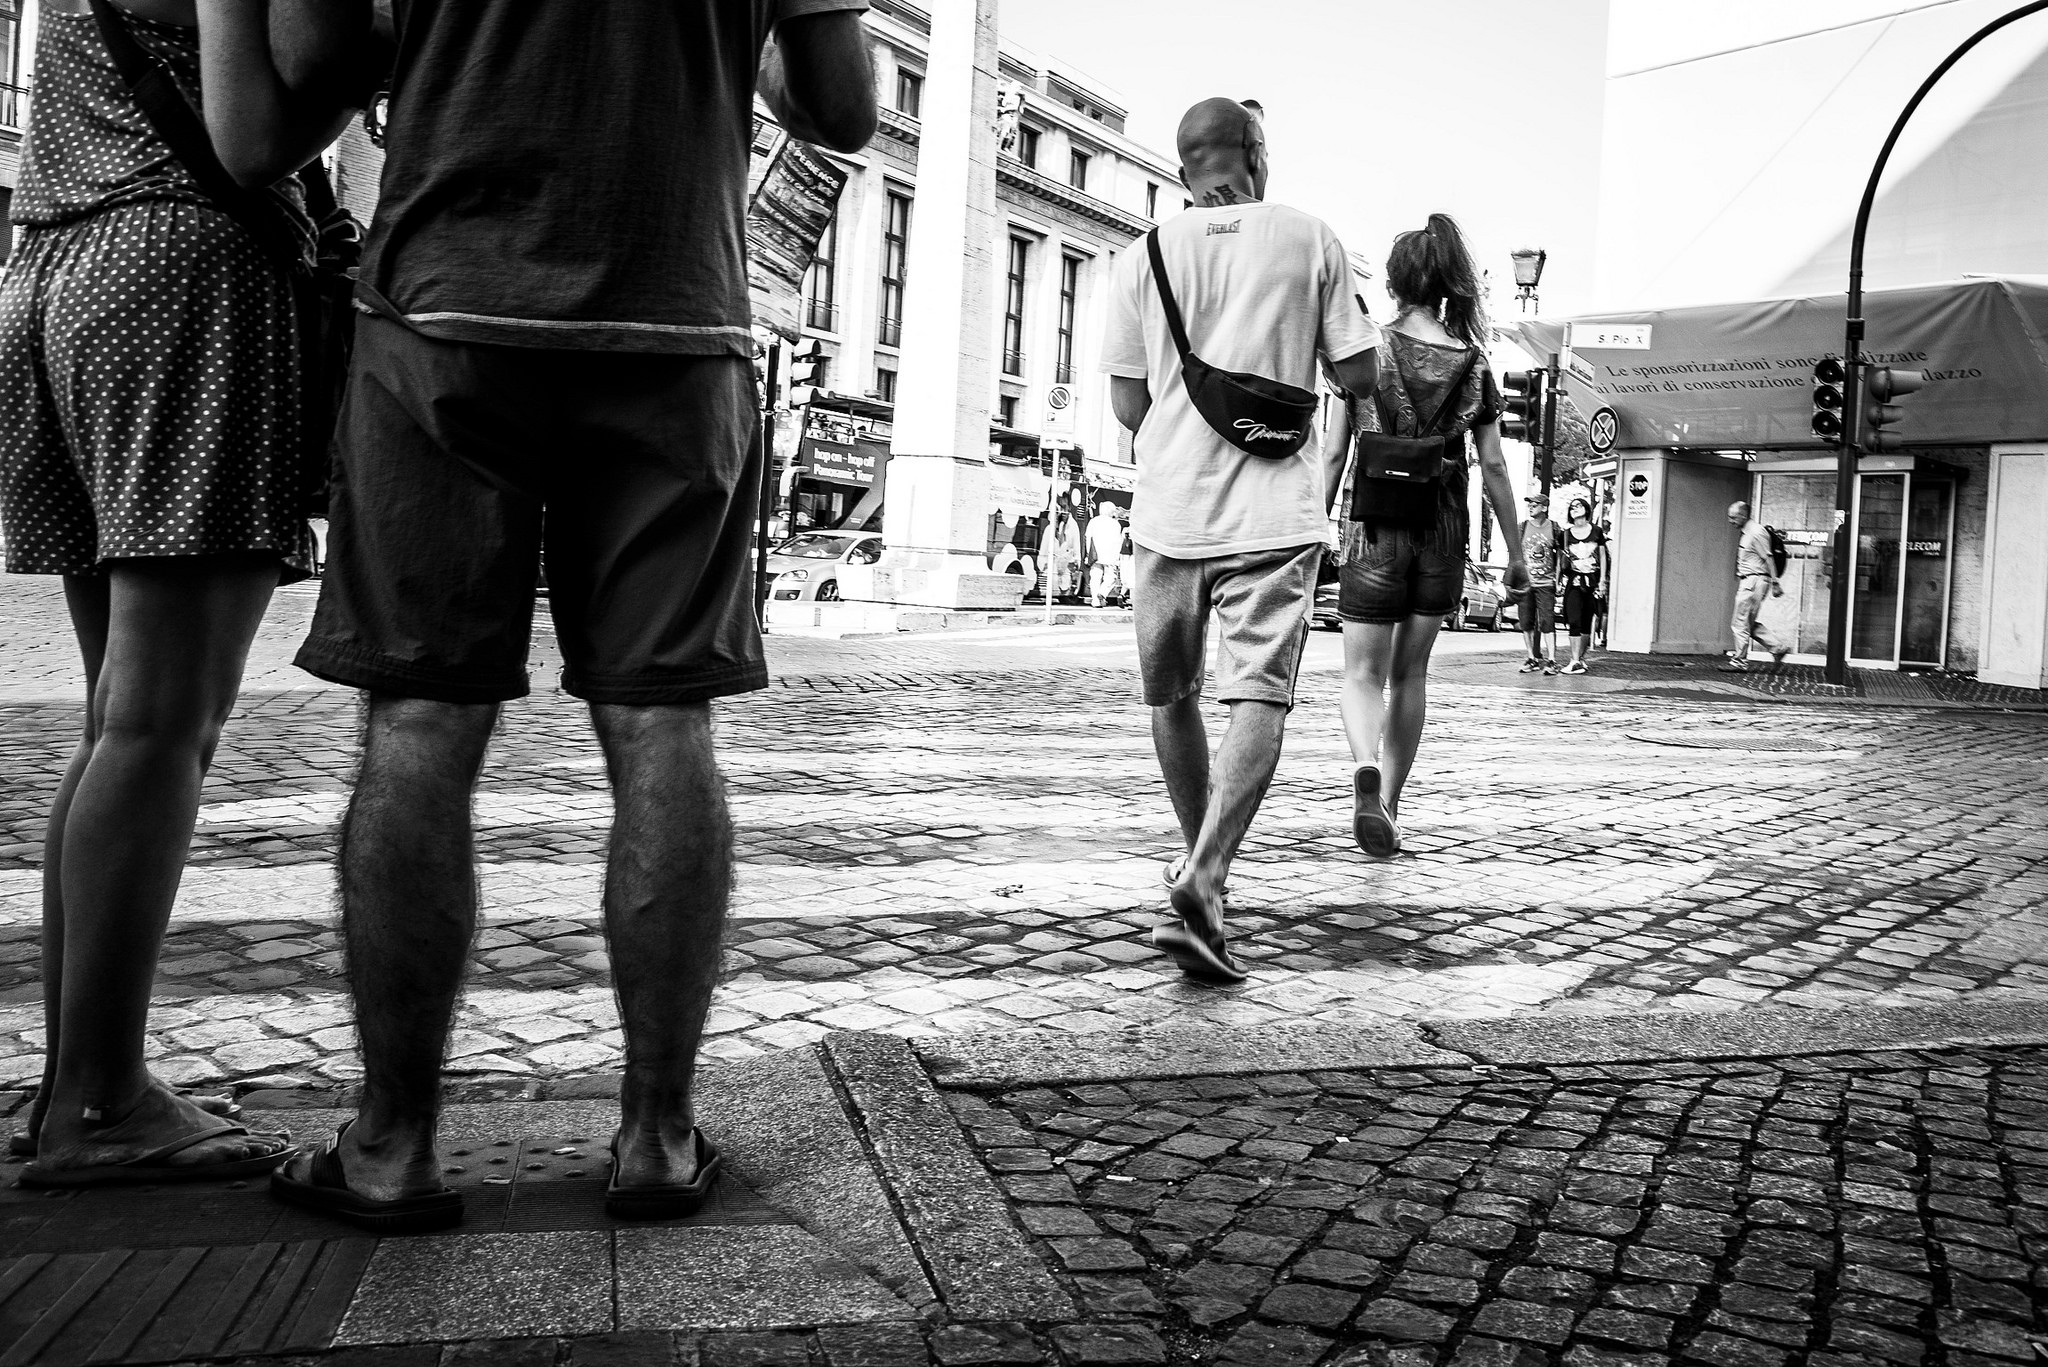 Roma Street Photography - Stop or Go - © Maurizio Scacchi